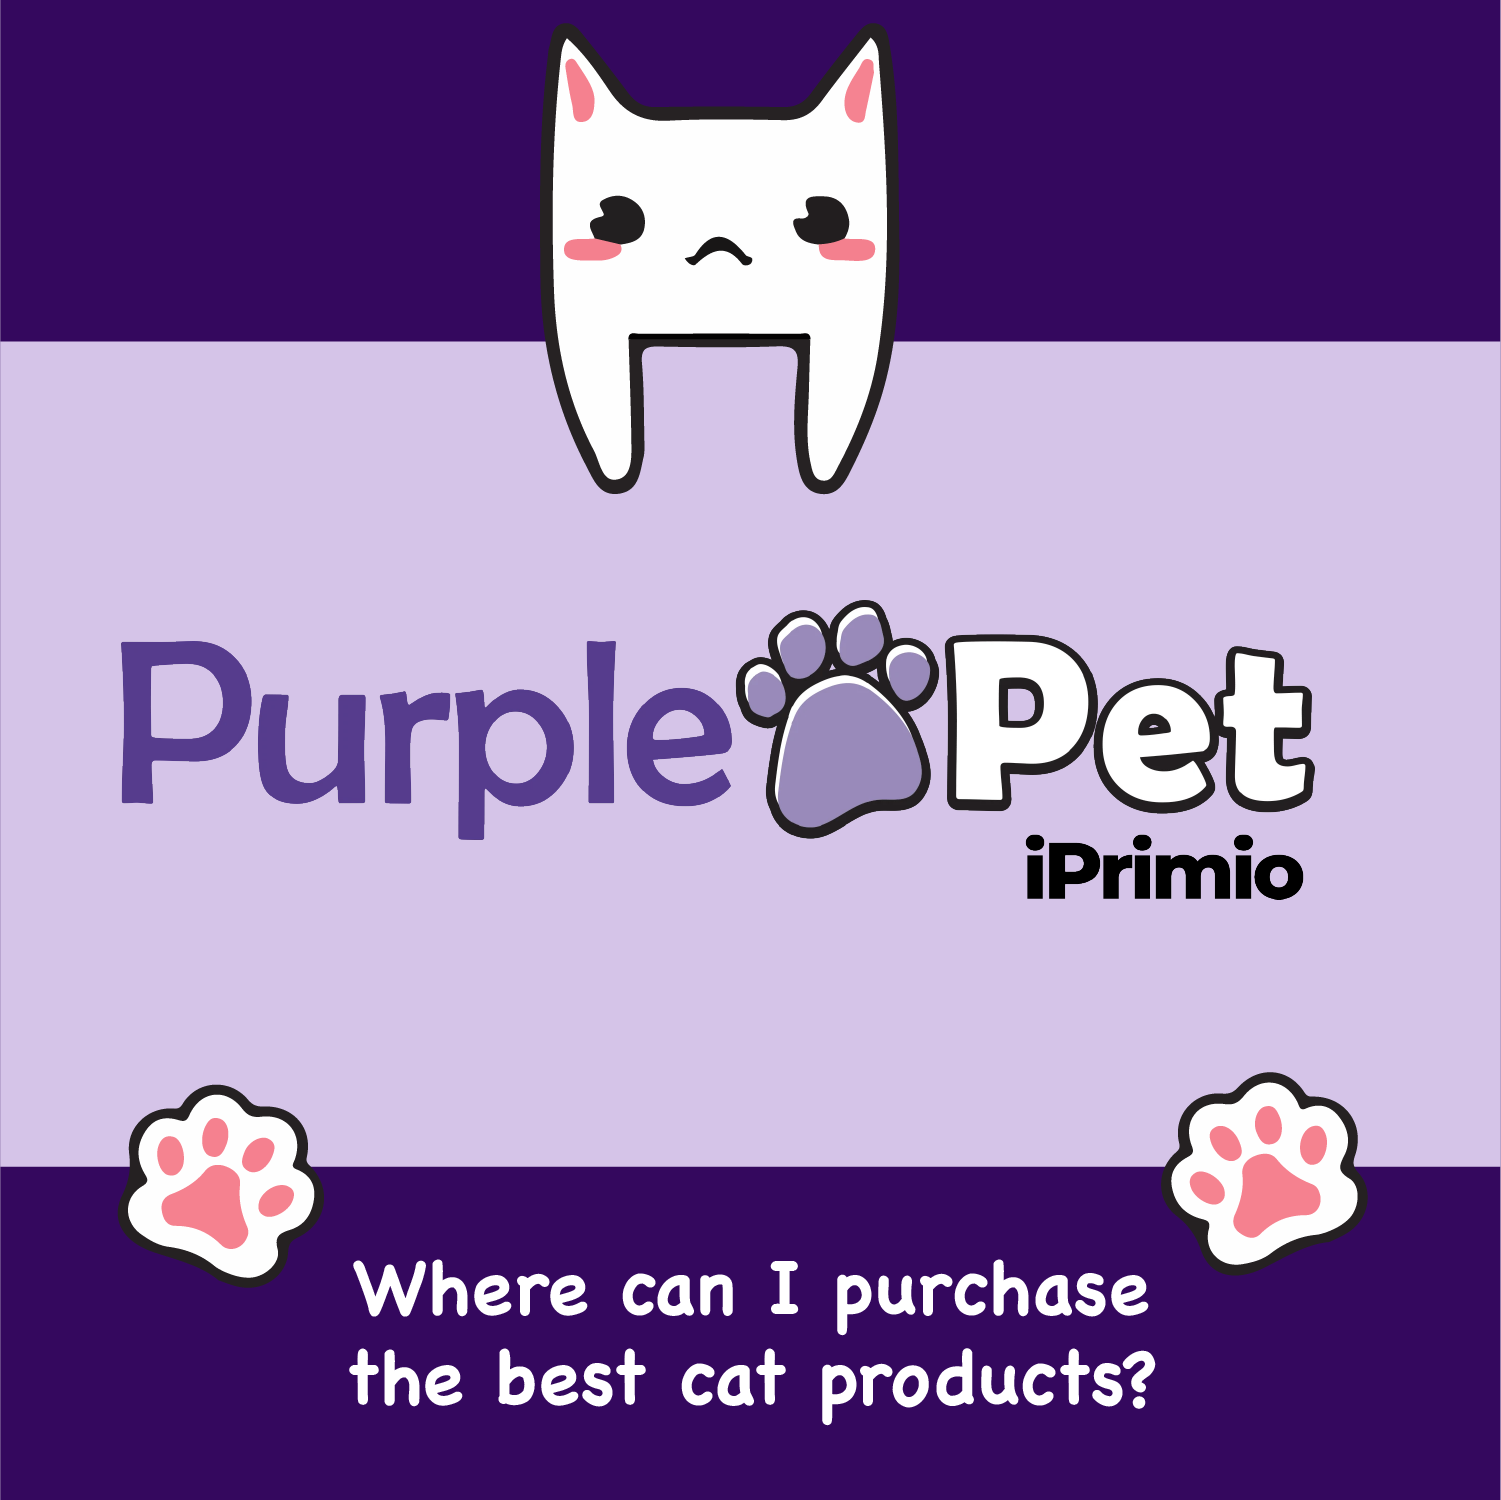 Where can I Purchase the Best Cat Products